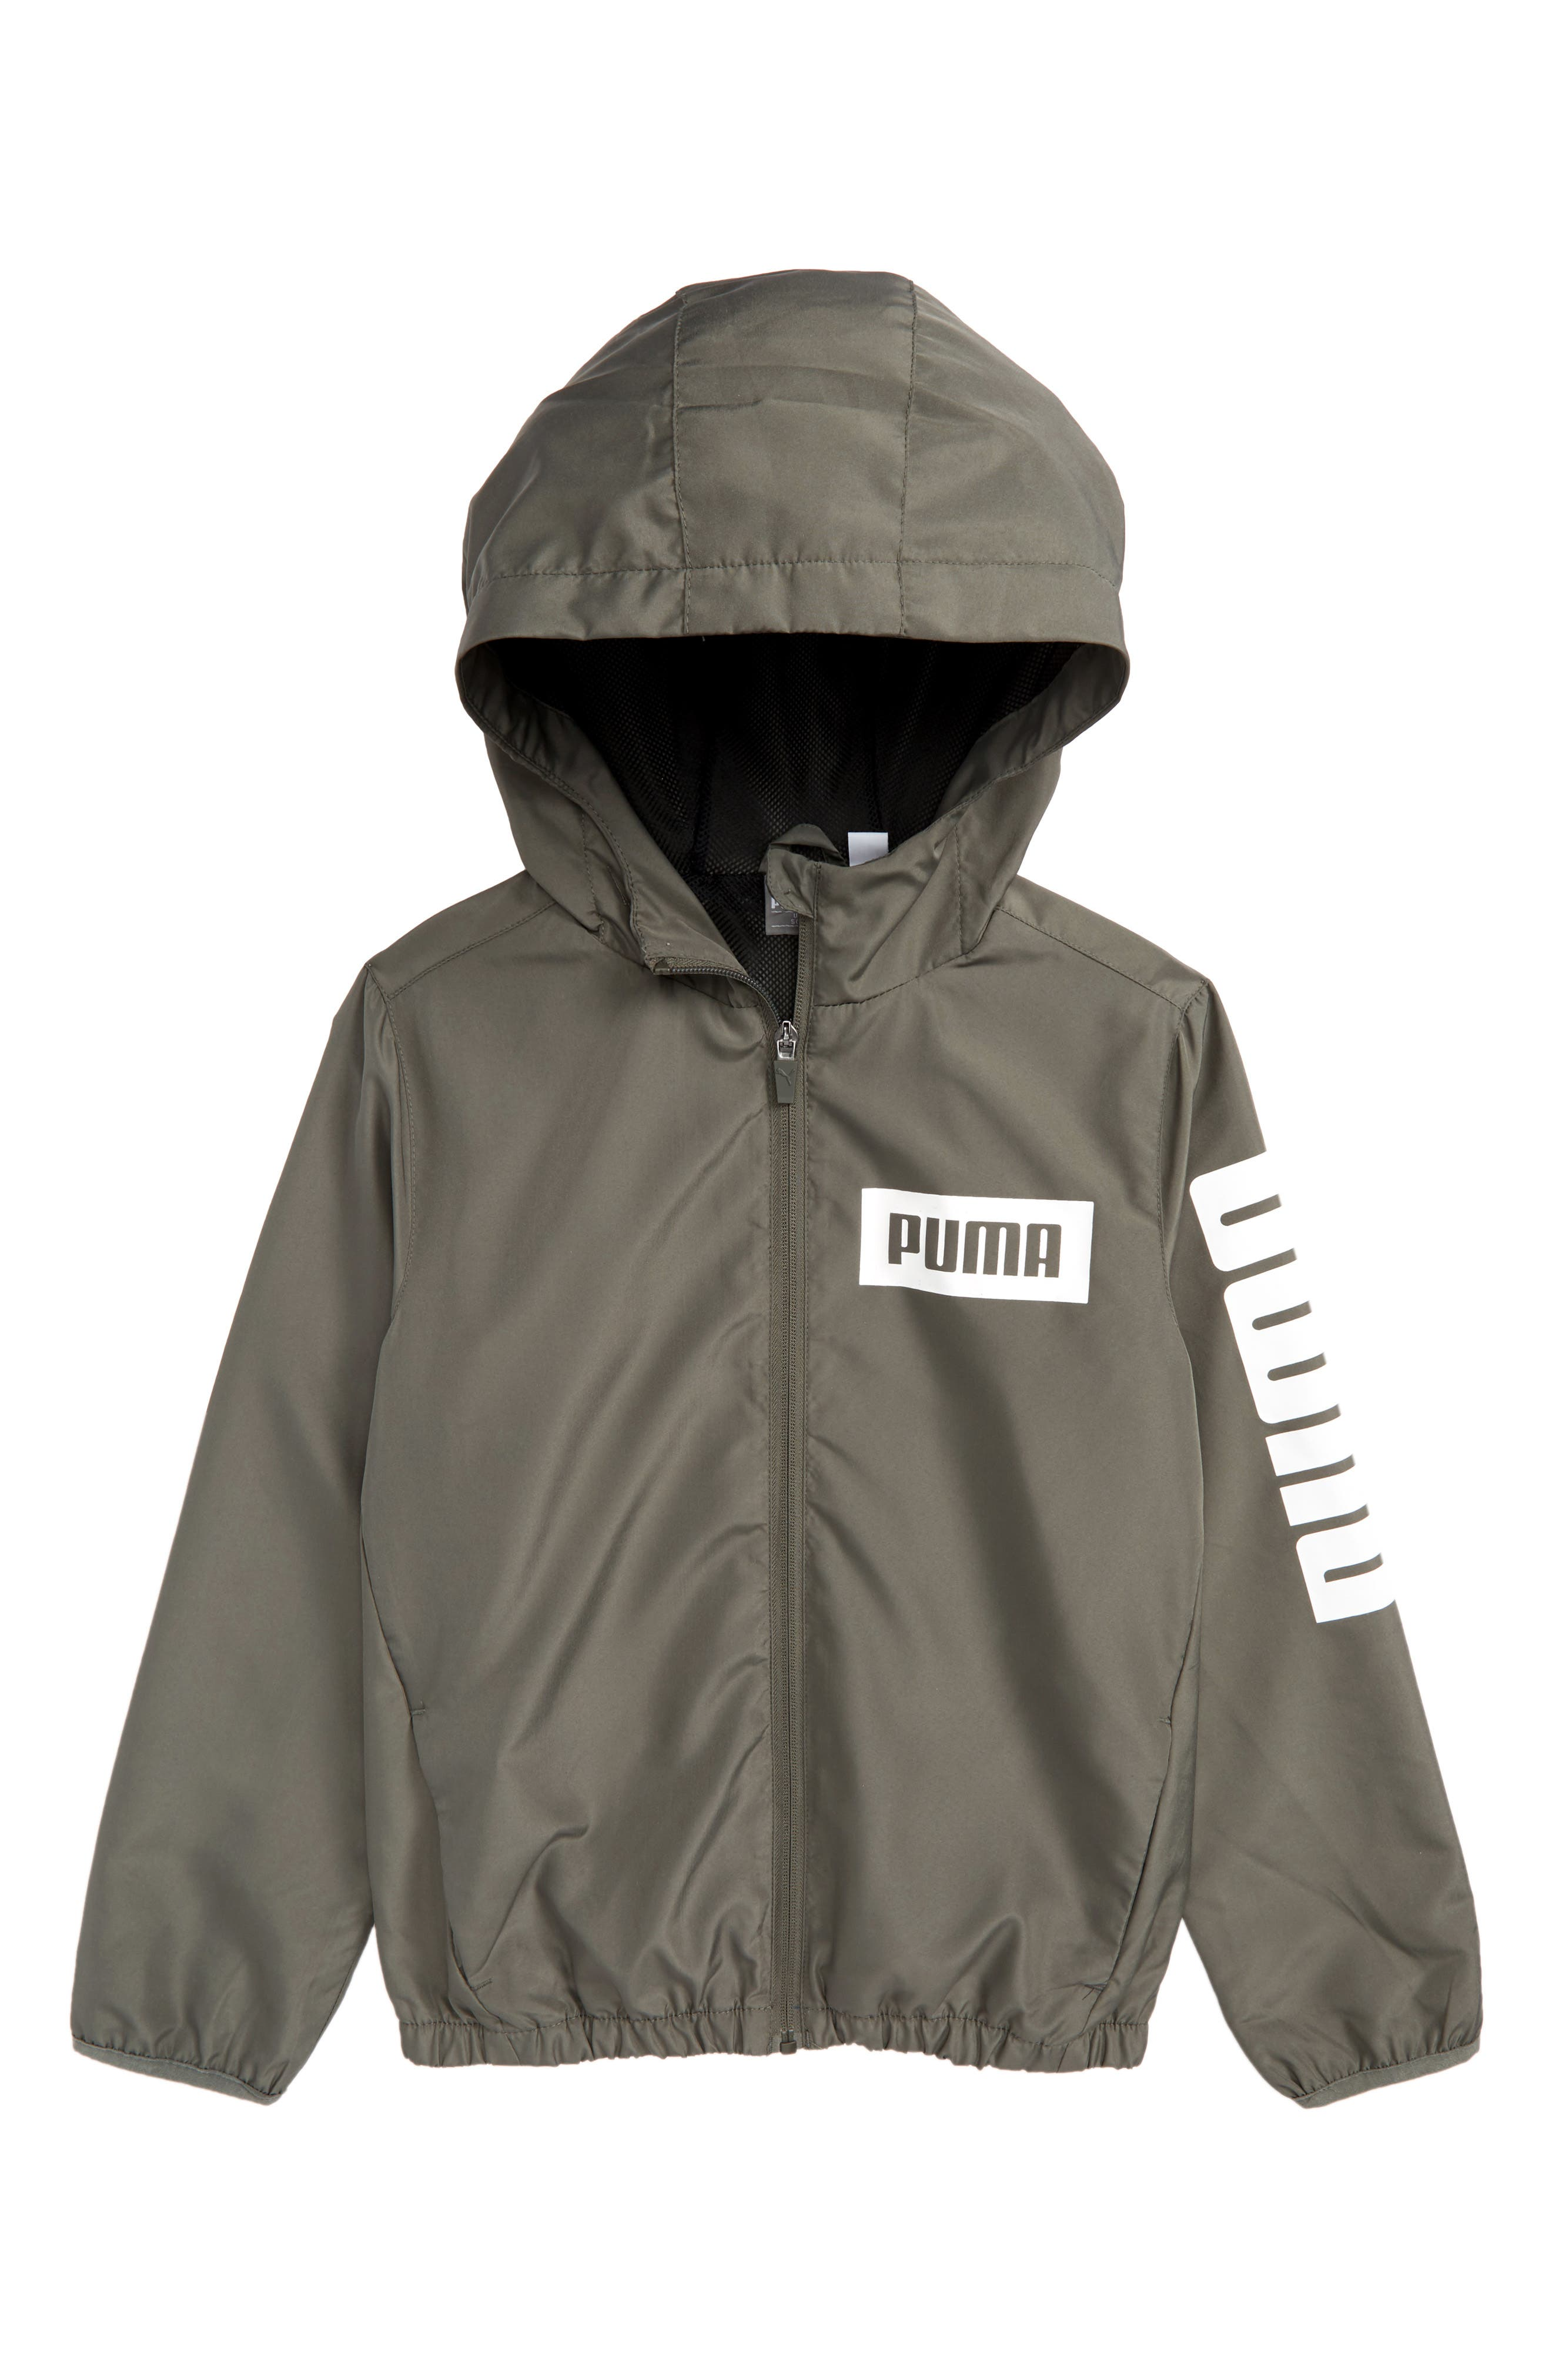 PUMA Rebel Full Zip Hooded Windbreaker Jacket (Big Boys)